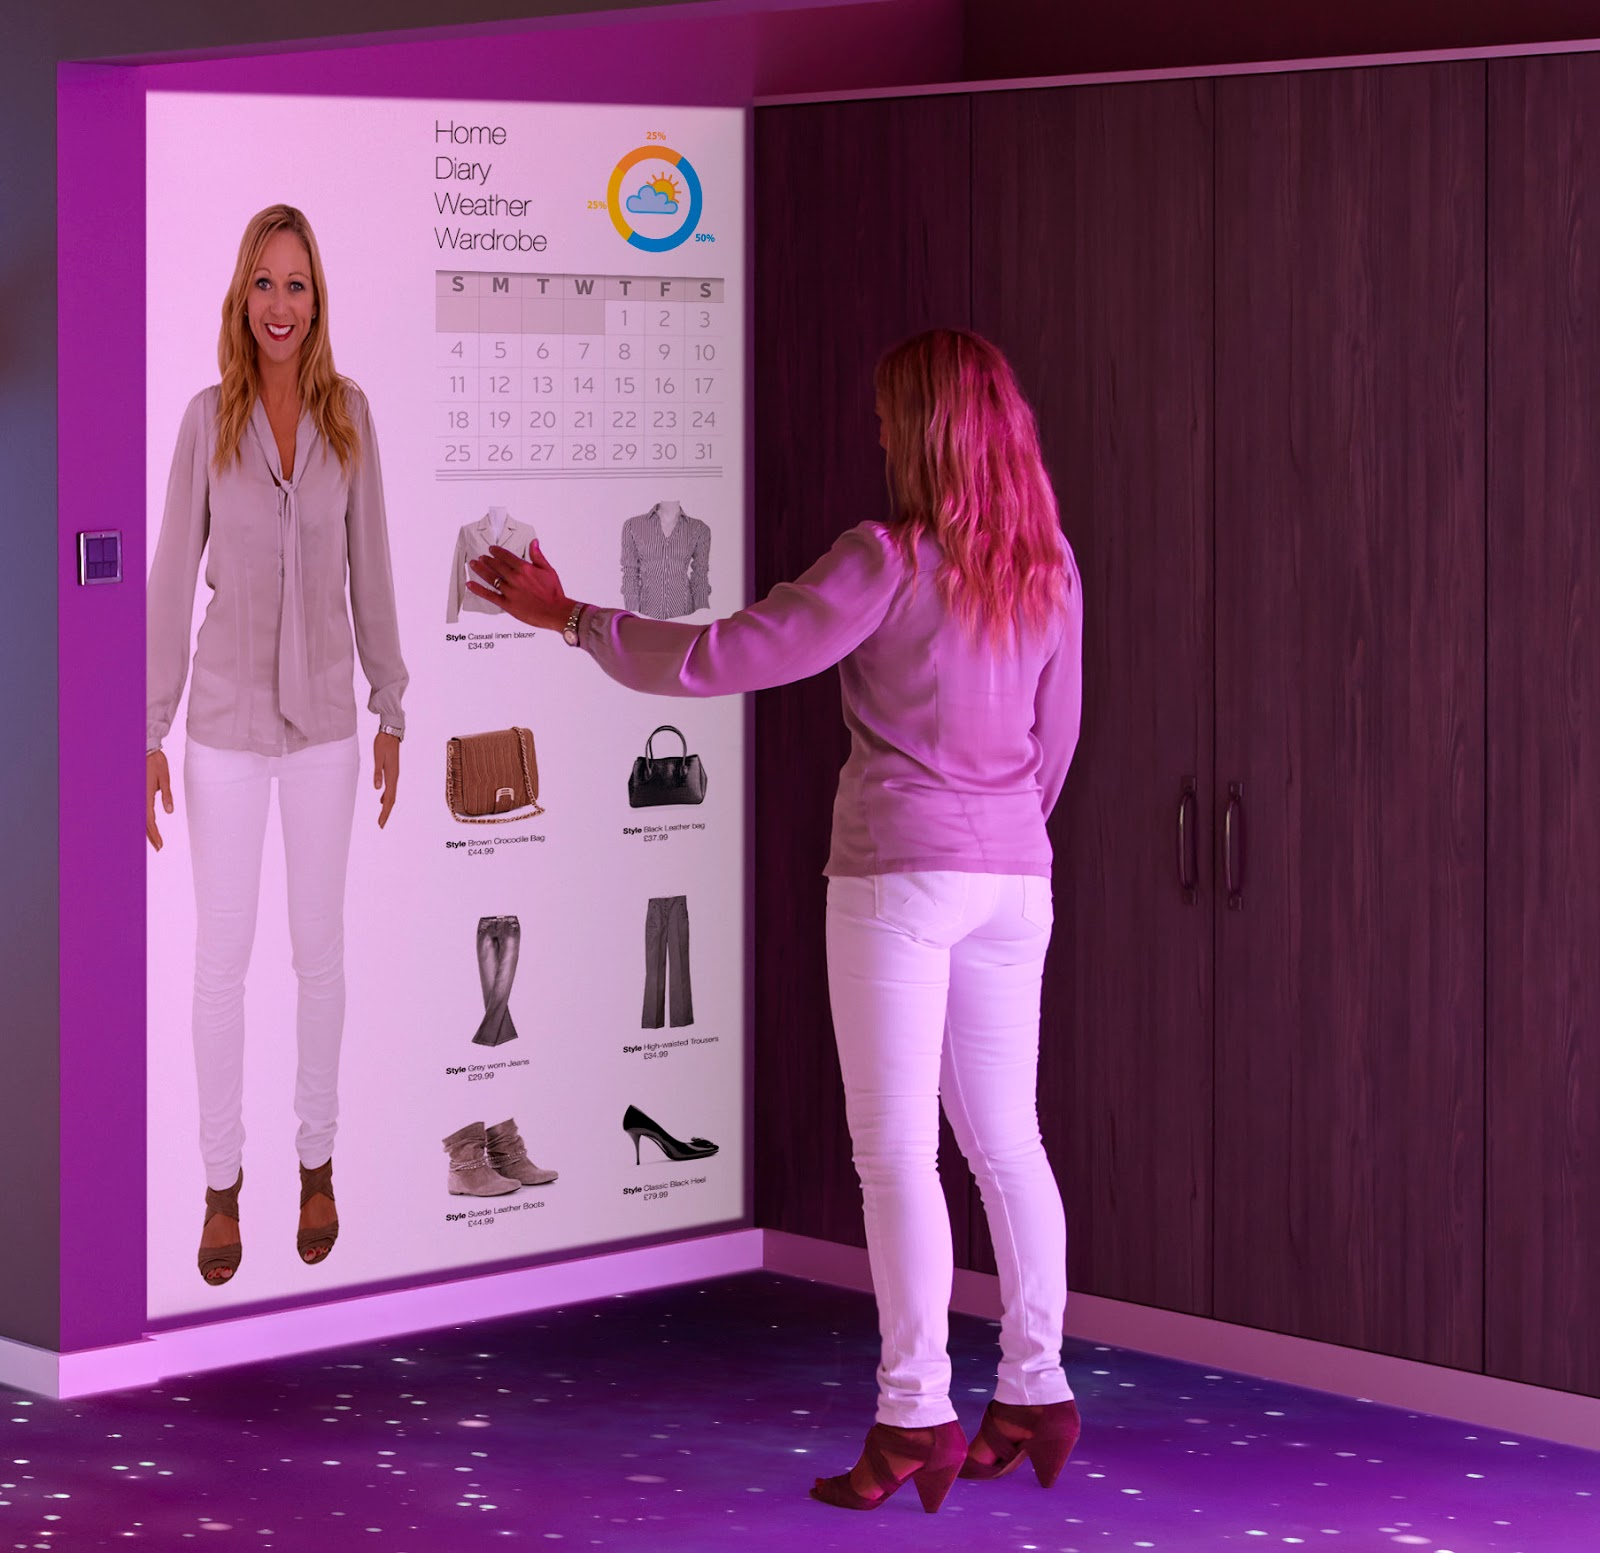 Virtual Wardrobe Mirror Shopping Is No More A Time Consuming Gig Thechirpingsoul